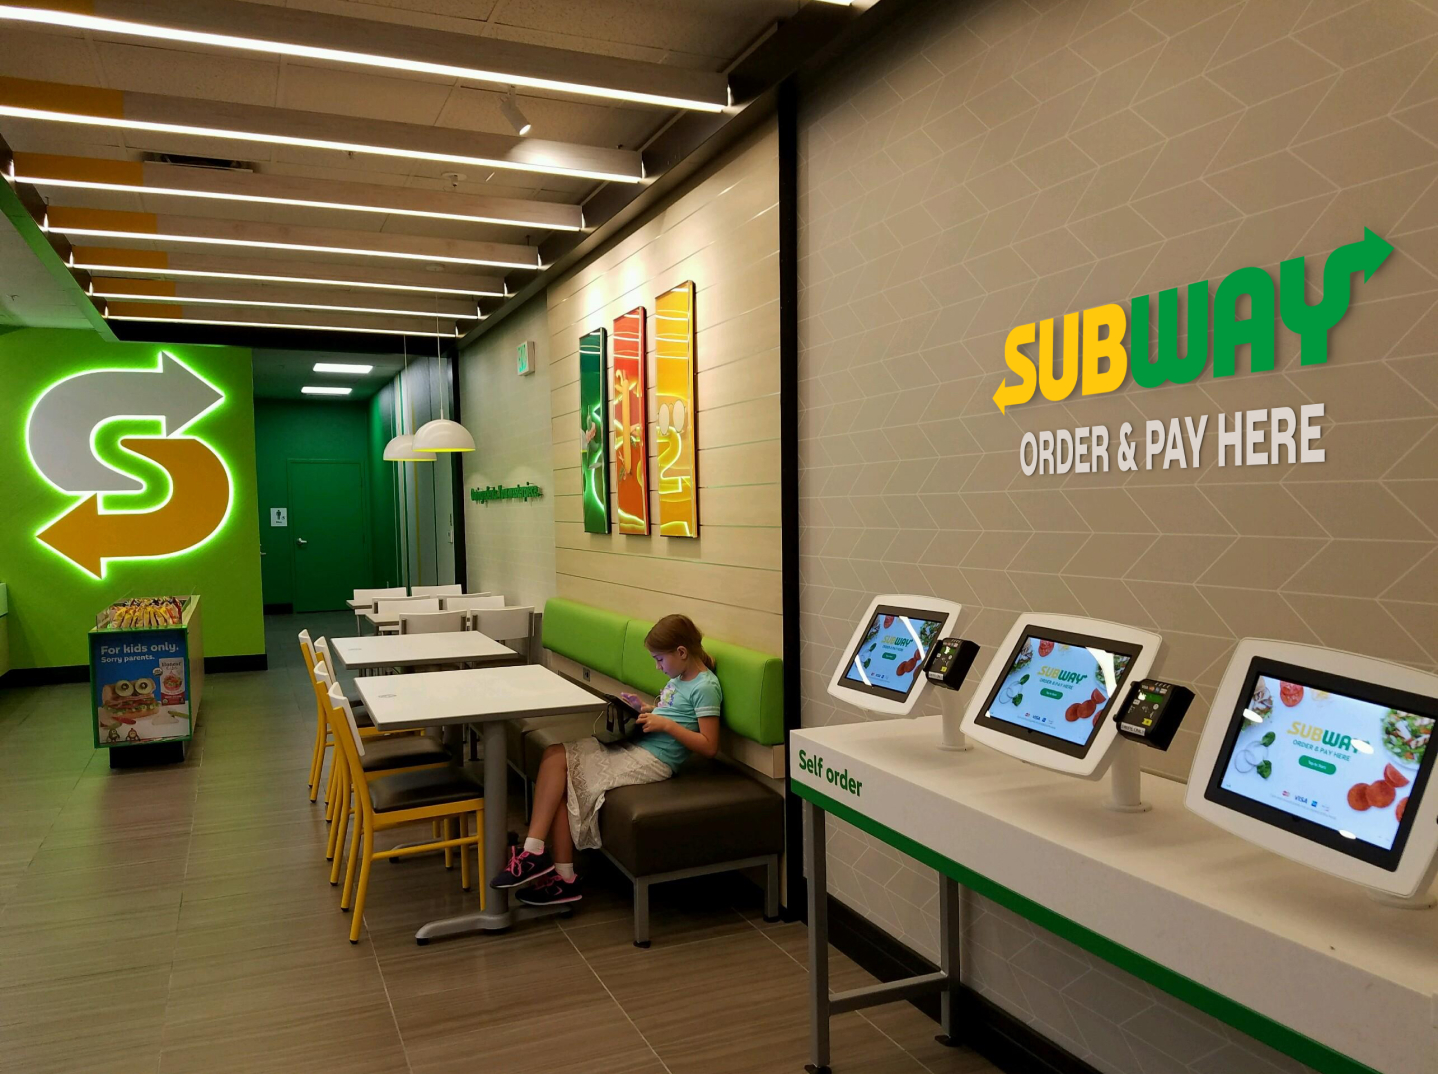 Subway Restaurants - Helping a global brand, with over 40k locations, digitally engage and satisfy their customers.